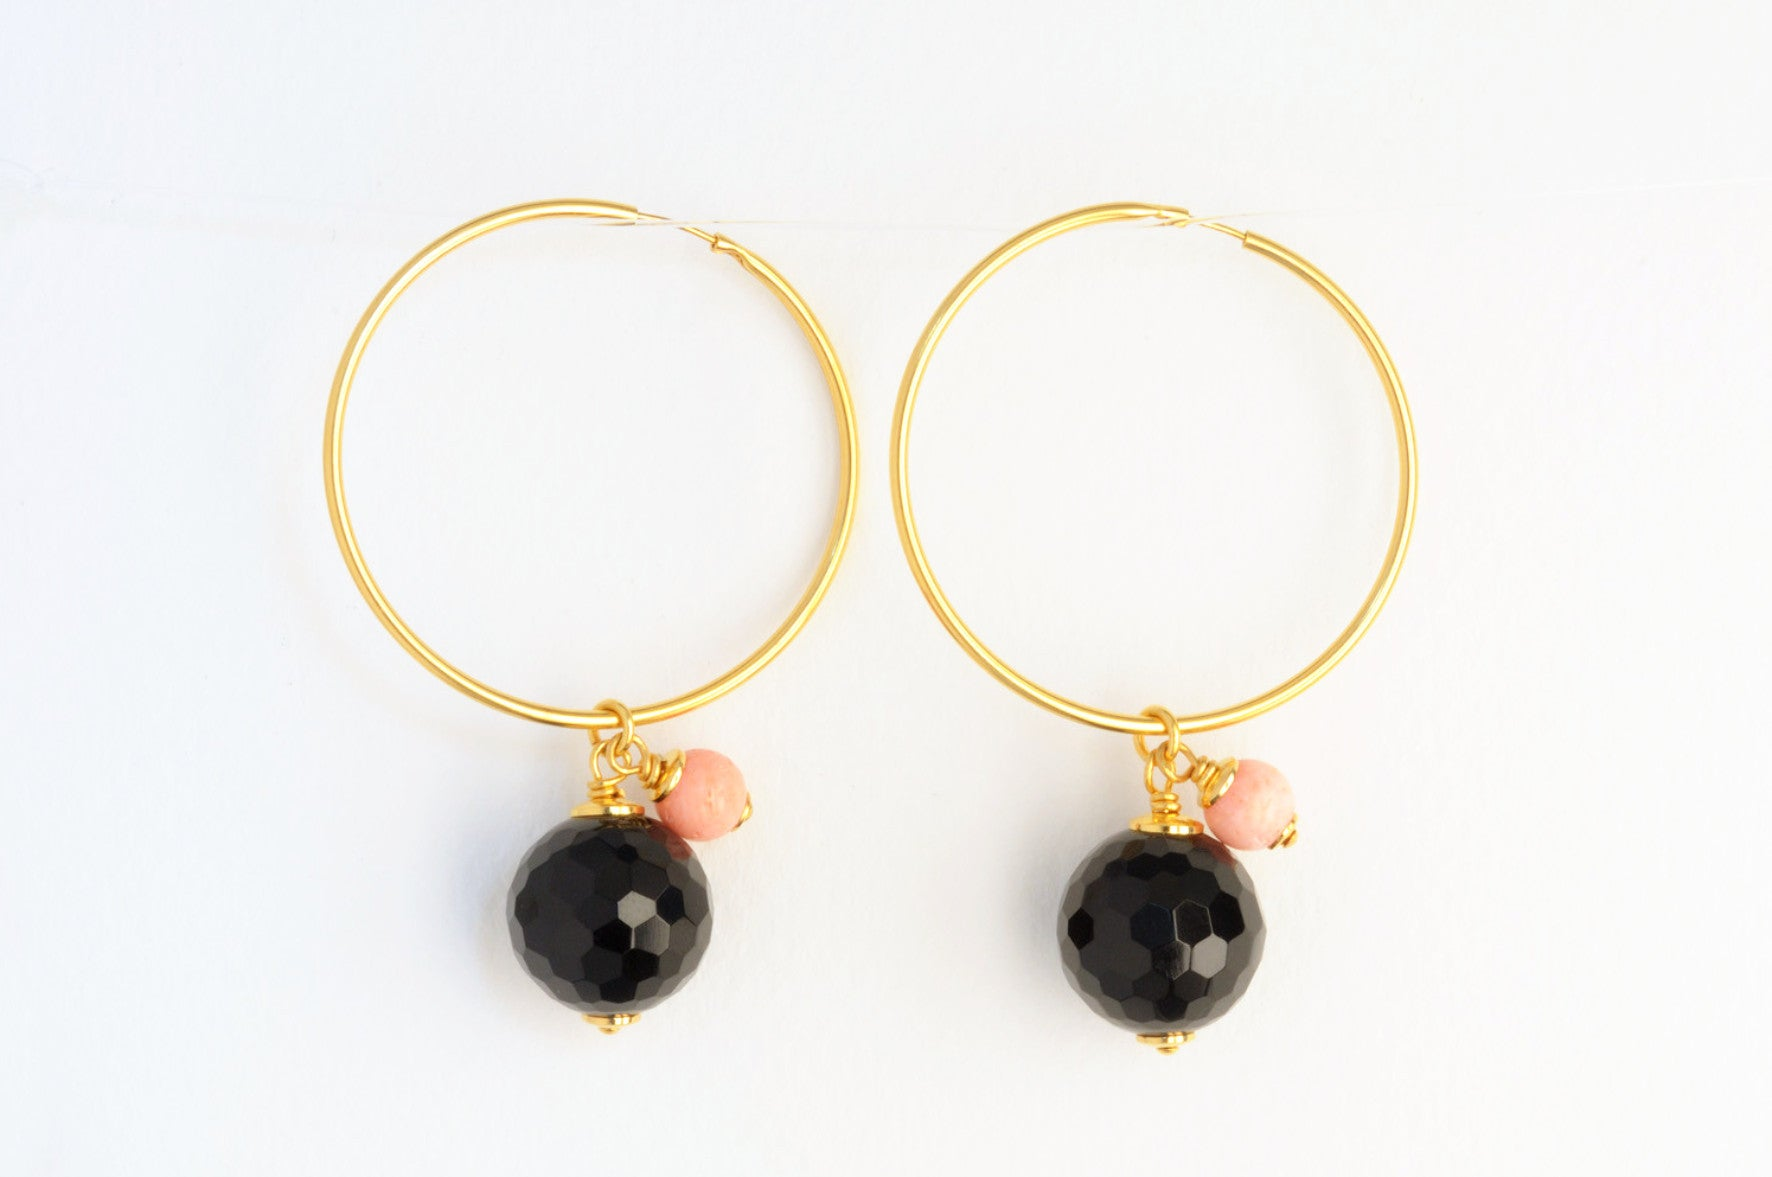 ....Ohrringe BUBBLES BLACK CORAL CREOLE large Creole vergoldet..Earrings BUBBLES BLACK CORAL CREOLE large gold plated....